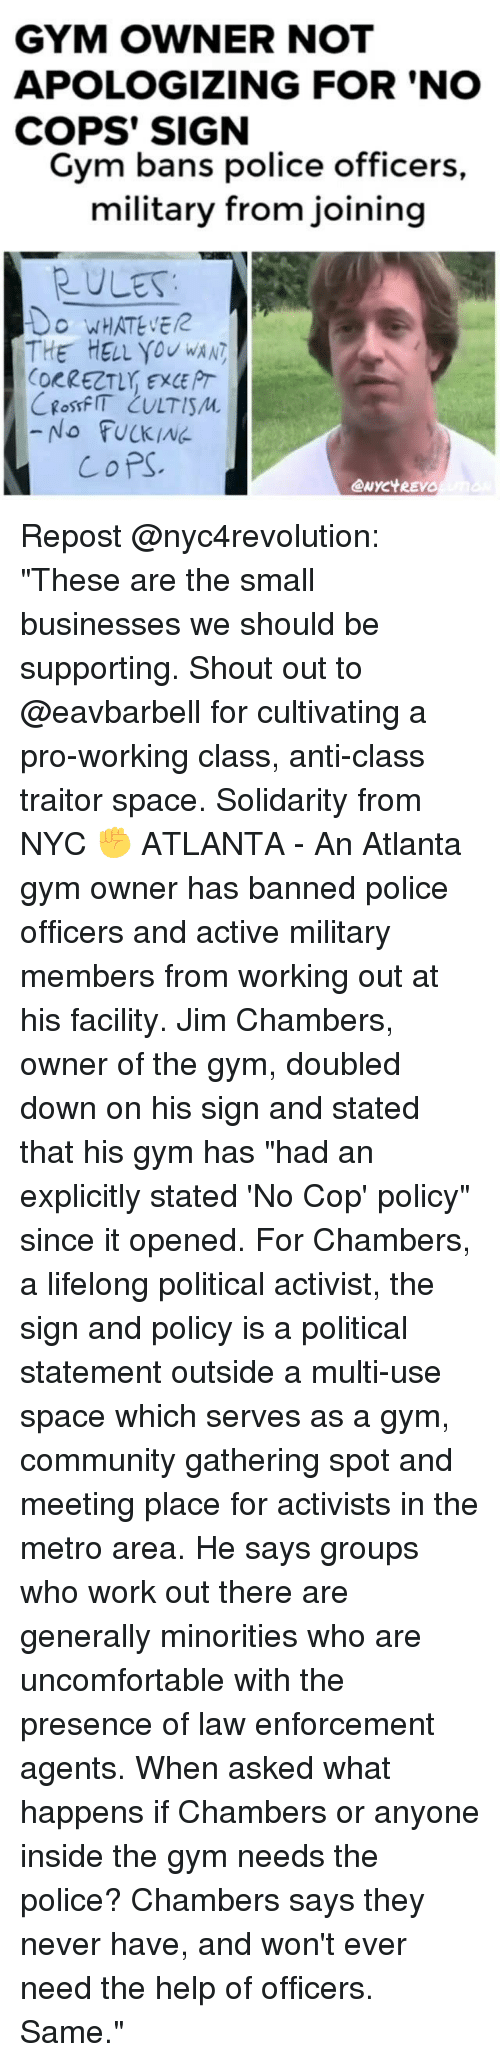 "Community, Fucking, and Gym: GYM OWNER NOT  APOLOGIZING FOR 'NO  COPS' SIGN  Gym bans police officers  military from joining  RULES  O WHATEVE  THE HELL you wAN  ORRECT, EXCE PT  -No FUCKING  CoPS  eNYC't REVO Repost @nyc4revolution: ""These are the small businesses we should be supporting. Shout out to @eavbarbell for cultivating a pro-working class, anti-class traitor space. Solidarity from NYC ✊ ATLANTA - An Atlanta gym owner has banned police officers and active military members from working out at his facility. Jim Chambers, owner of the gym, doubled down on his sign and stated that his gym has ""had an explicitly stated 'No Cop' policy"" since it opened. For Chambers, a lifelong political activist, the sign and policy is a political statement outside a multi-use space which serves as a gym, community gathering spot and meeting place for activists in the metro area. He says groups who work out there are generally minorities who are uncomfortable with the presence of law enforcement agents. When asked what happens if Chambers or anyone inside the gym needs the police? Chambers says they never have, and won't ever need the help of officers. Same."""